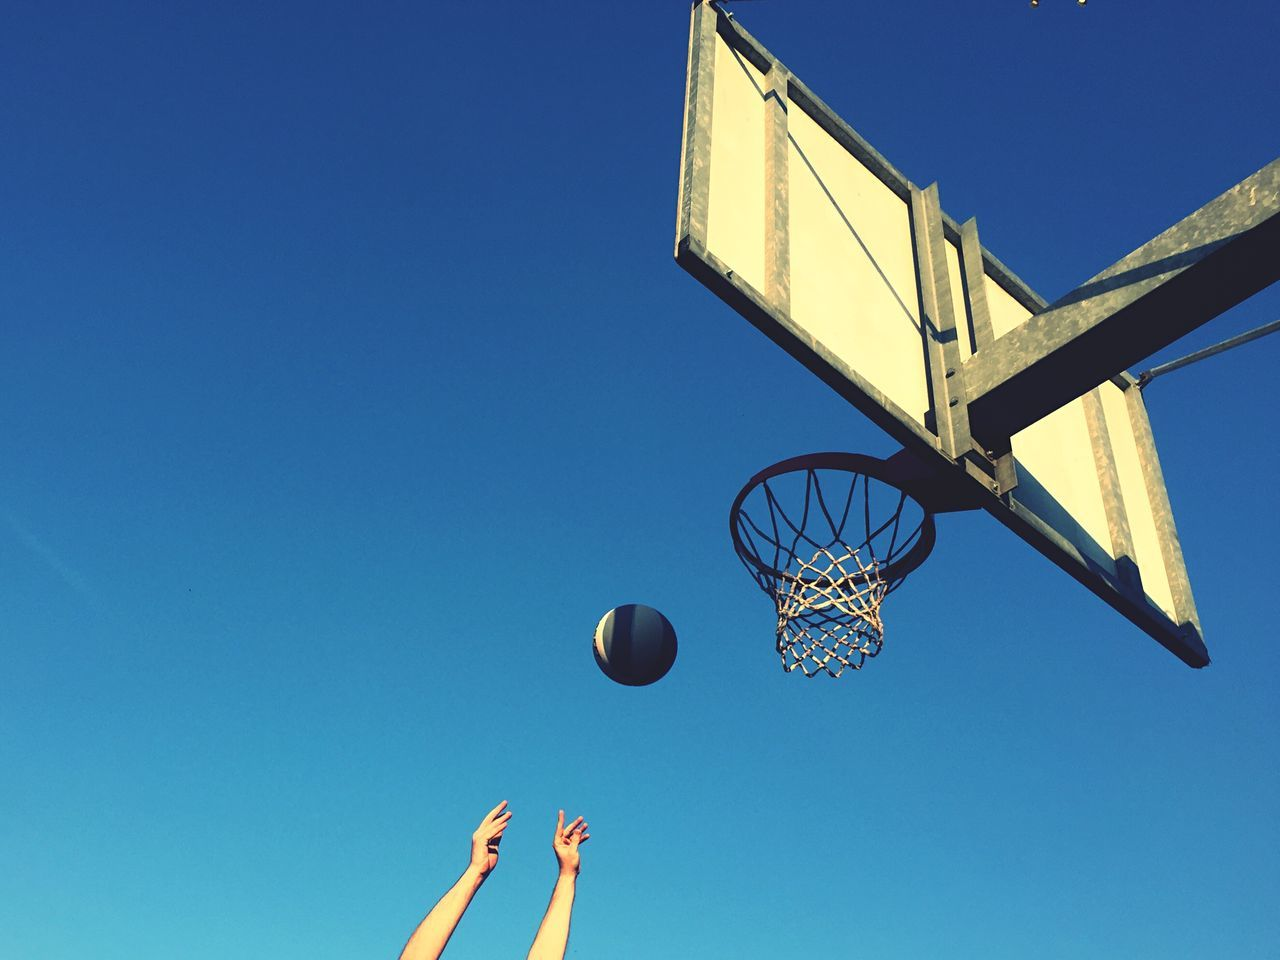 sky, basketball - sport, sport, blue, low angle view, basketball hoop, ball, clear sky, nature, copy space, day, playing, net - sports equipment, leisure activity, people, mid-air, motion, outdoors, sunlight, human body part, basketball - ball, human limb, arms raised, finger